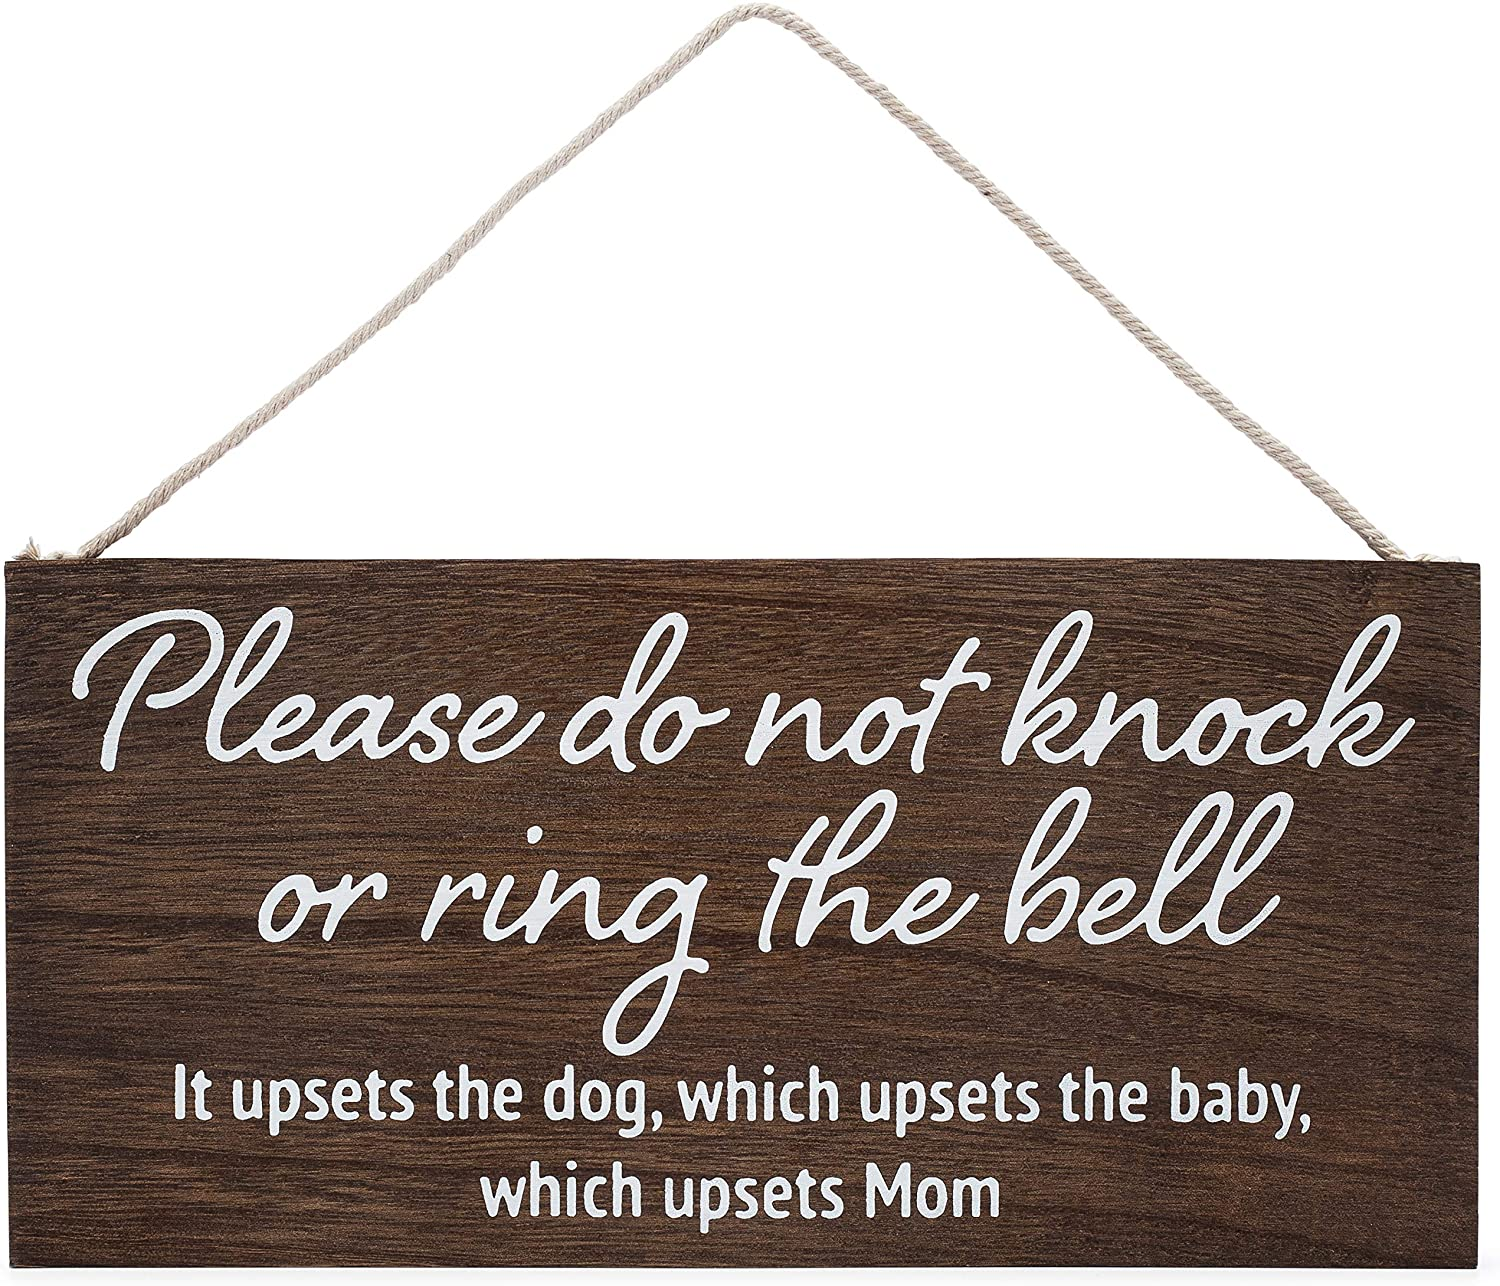 Baby Sleeping Sign for Front Door - Please do not Knock or Ring The Bell, it upsets The Dog, which upsets The Baby, which upsets mom - No Soliciting Sign for House - Do not Ring doorbell Sign